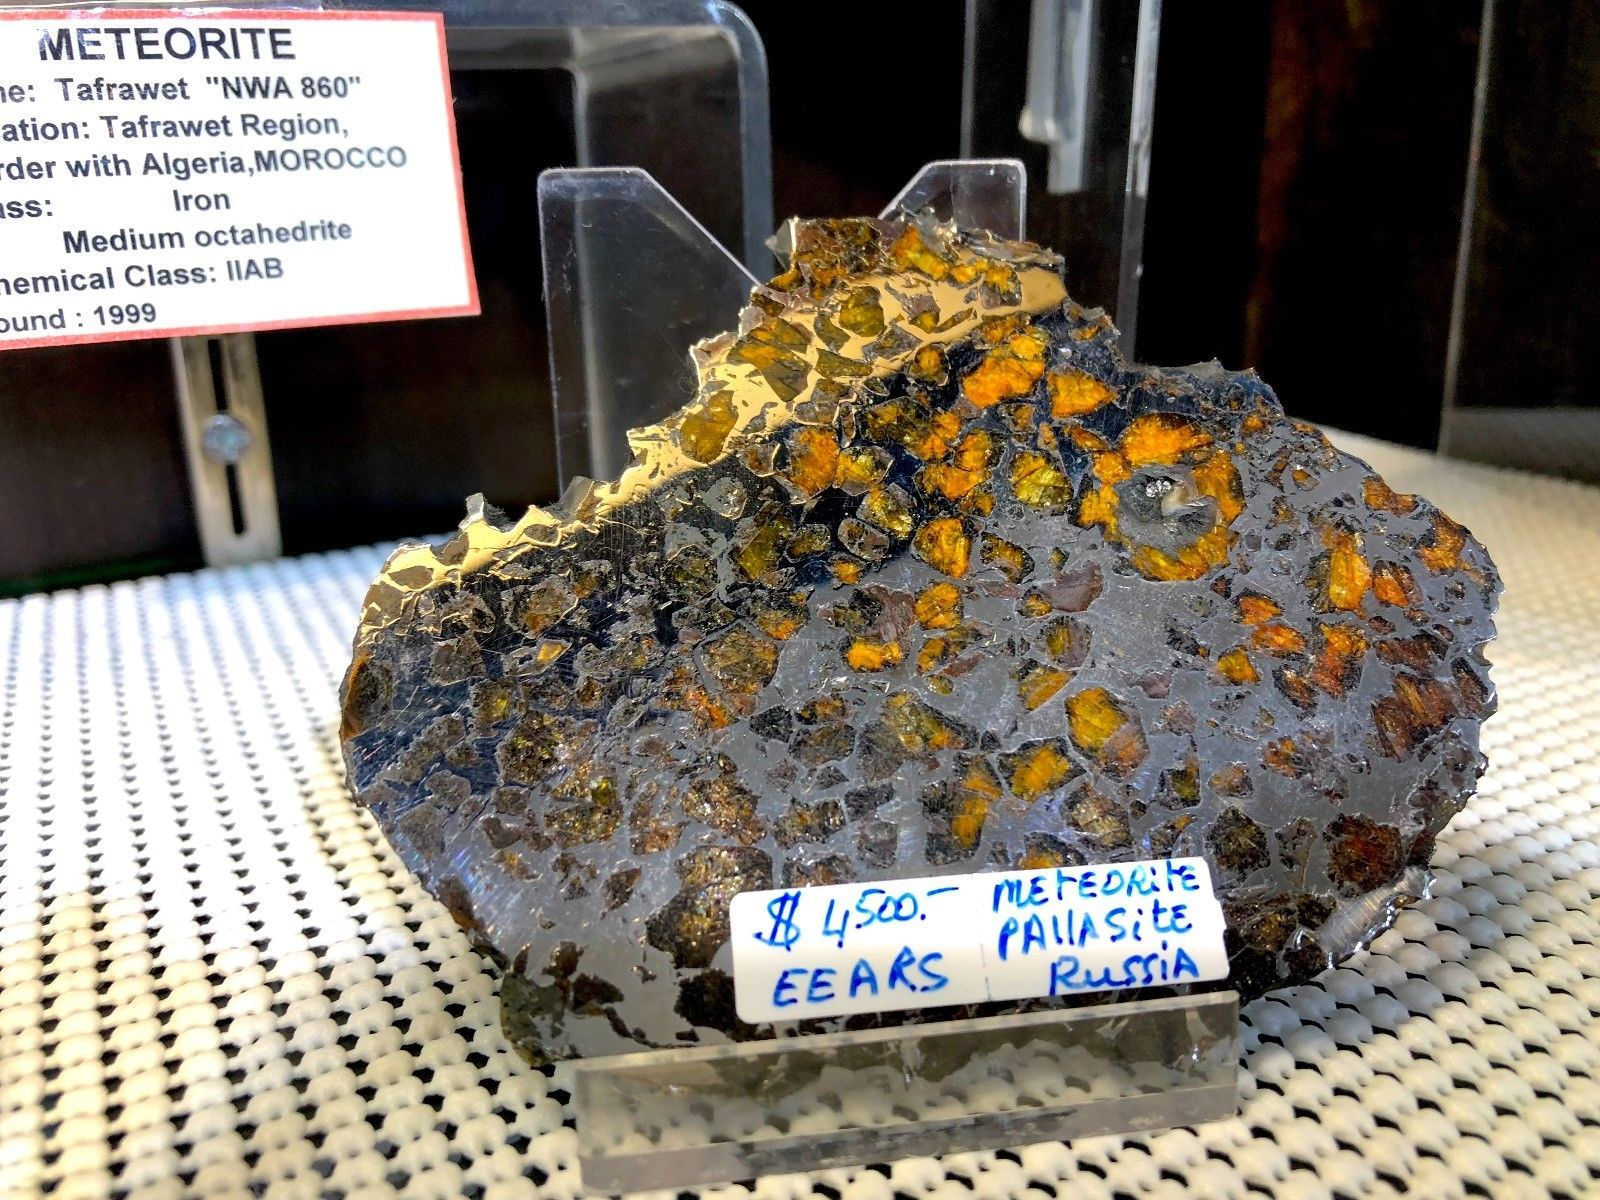 METEORITE SLICE PALLASITE PIRATE GOLD COINS TREASURES OF SPACE METEOR ARTIFACT